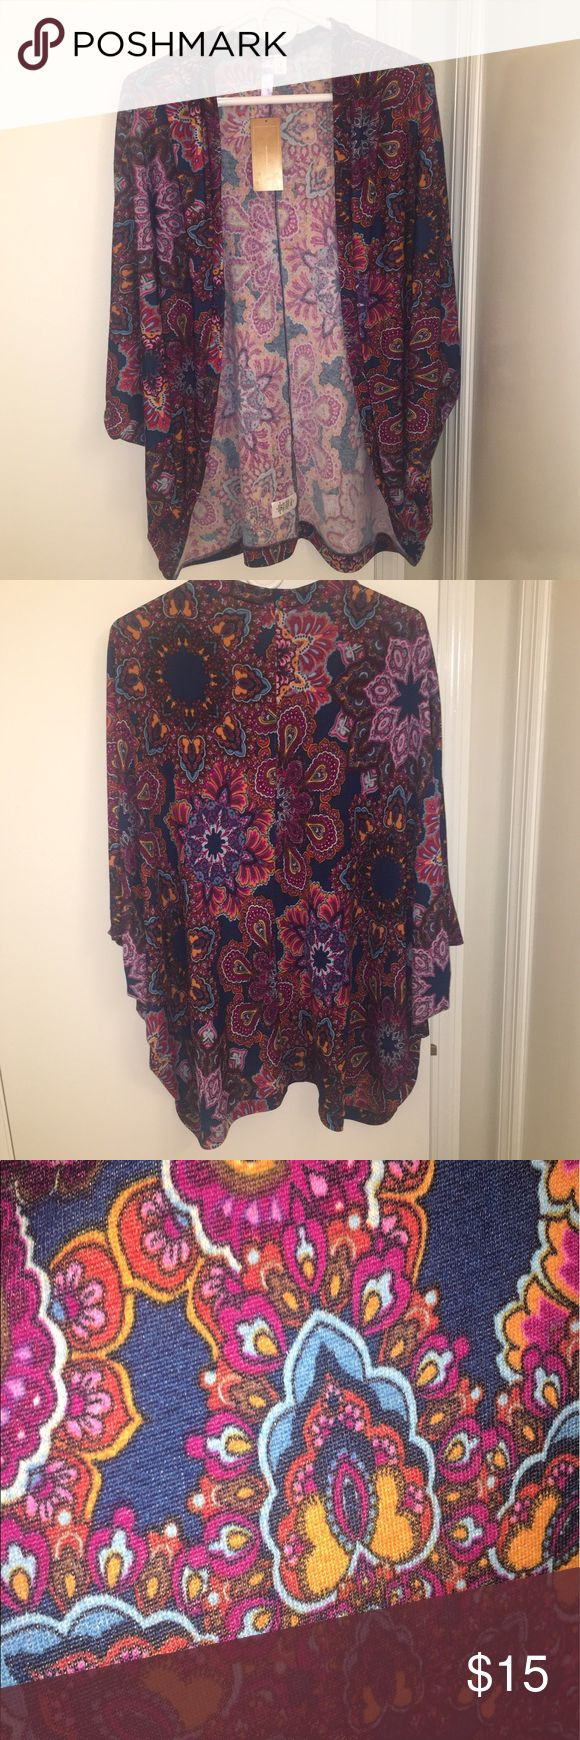 Francesca's multi color open cardigan NWT. Francesca's multi color open cardigan. Size S. Francesca's Collections Sweaters Cardigans